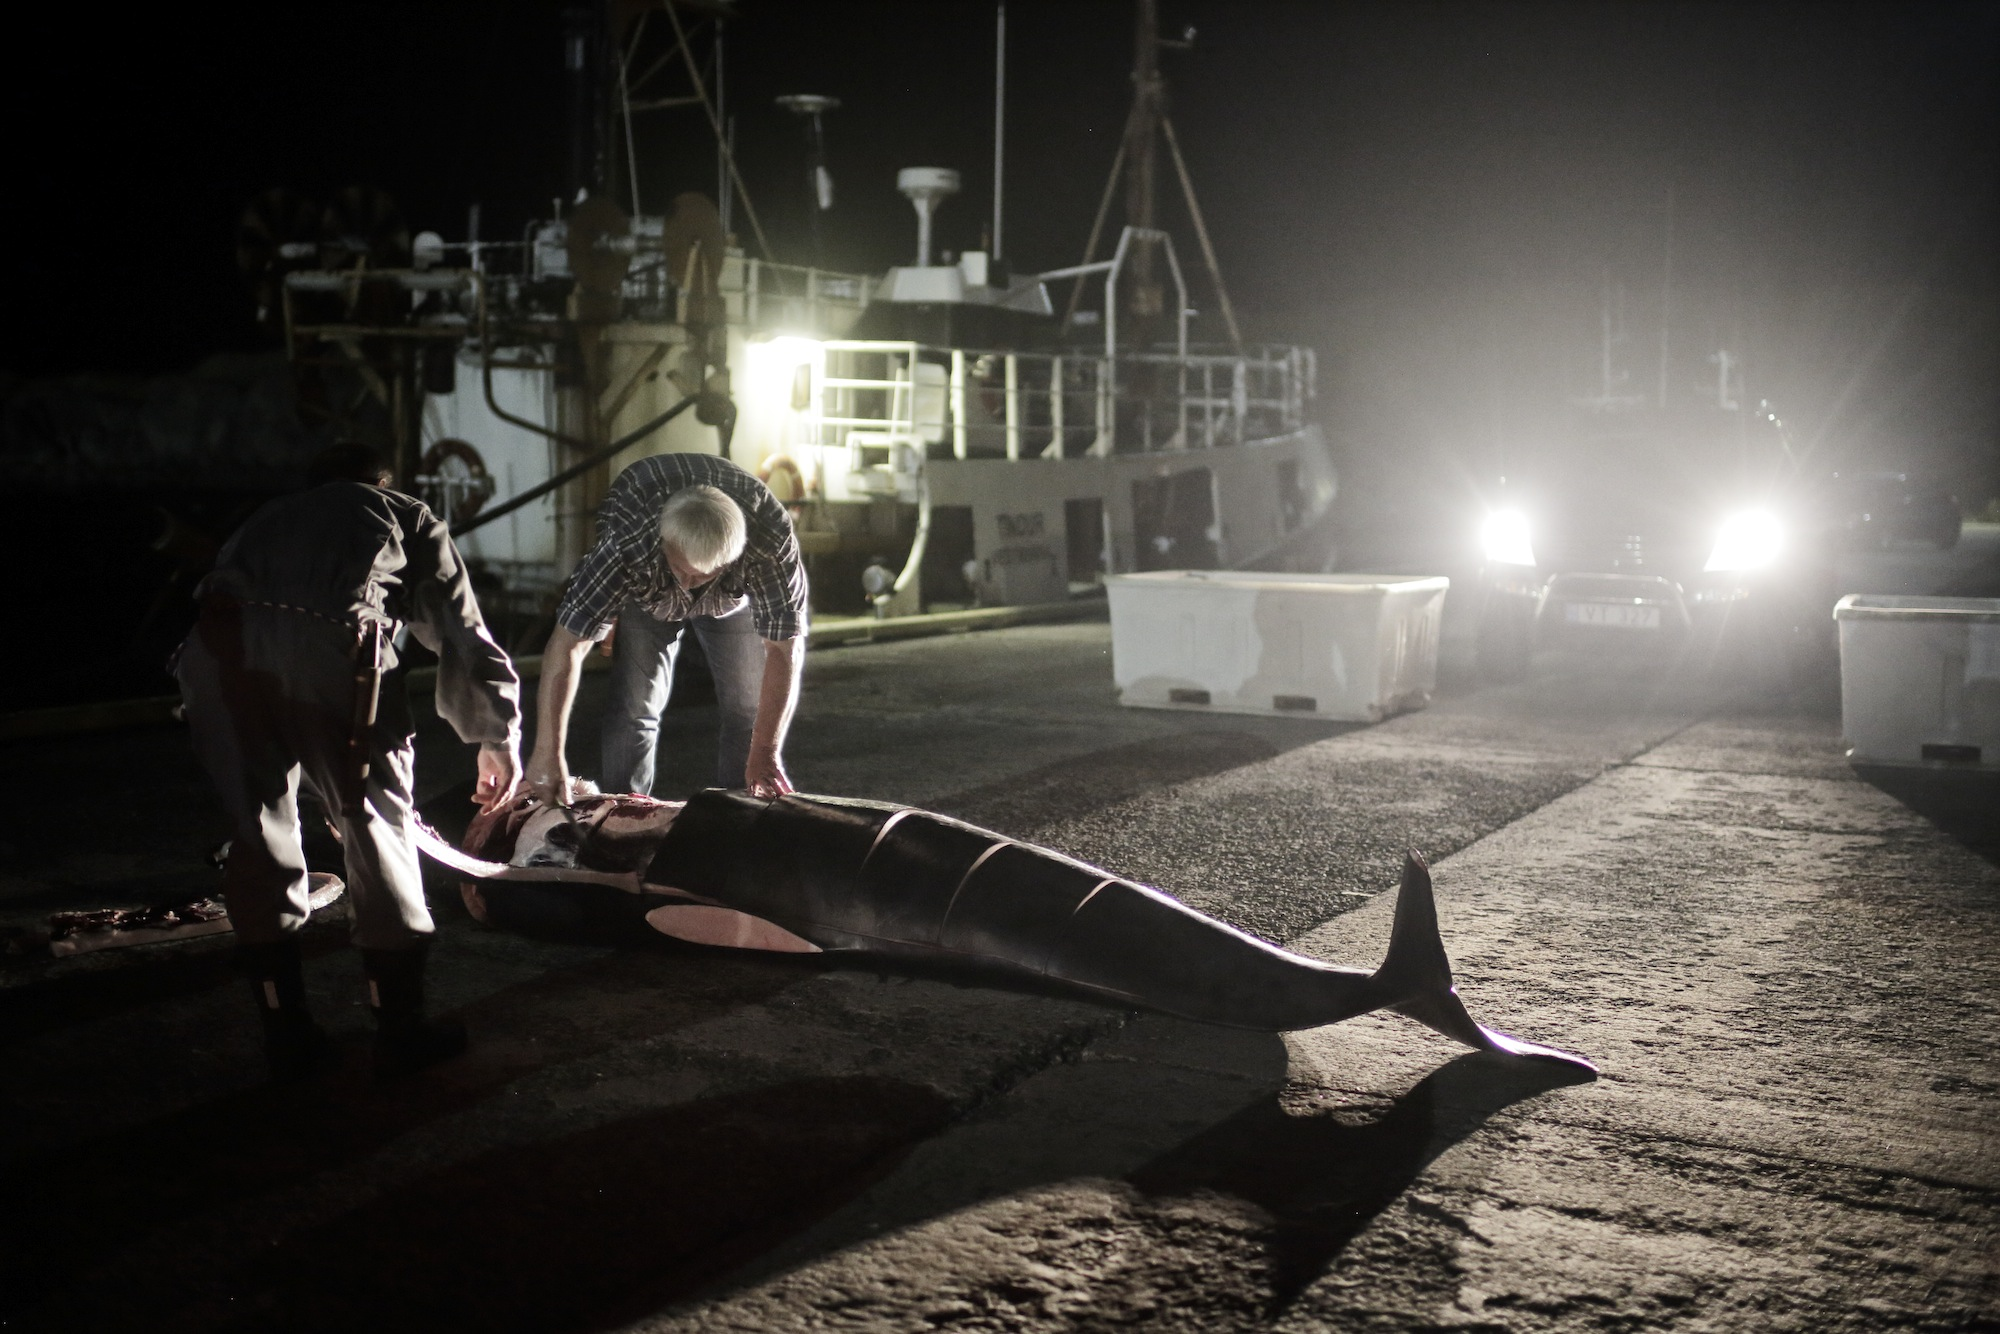 """Men harvest the meat of a pilot whale after a hunt in Sandur, Faroe Islands on Aug. 30, 2014. Not much can grow here, so the inhabitants have survived throughout the centuries by hunting seabirds, fishing, and raising sheep. The Faroese also hunt pilot whales. They call his hunt the grind. The word """"grind"""" can refer to the pilot whales themselves, the whale meat, or the event of the hunt. The tradition has endured for nearly 1,000 years. The grind usually occurs in the summer, but there is no set date, or even a set season. A grind can happen at any minute. When a pod is spotted, everyone drops what they're doing to participate in the hunt. The hunt has always been non-commercial, the meat is shared among the community.  (Ed Ou/Reportage by Getty Images)"""